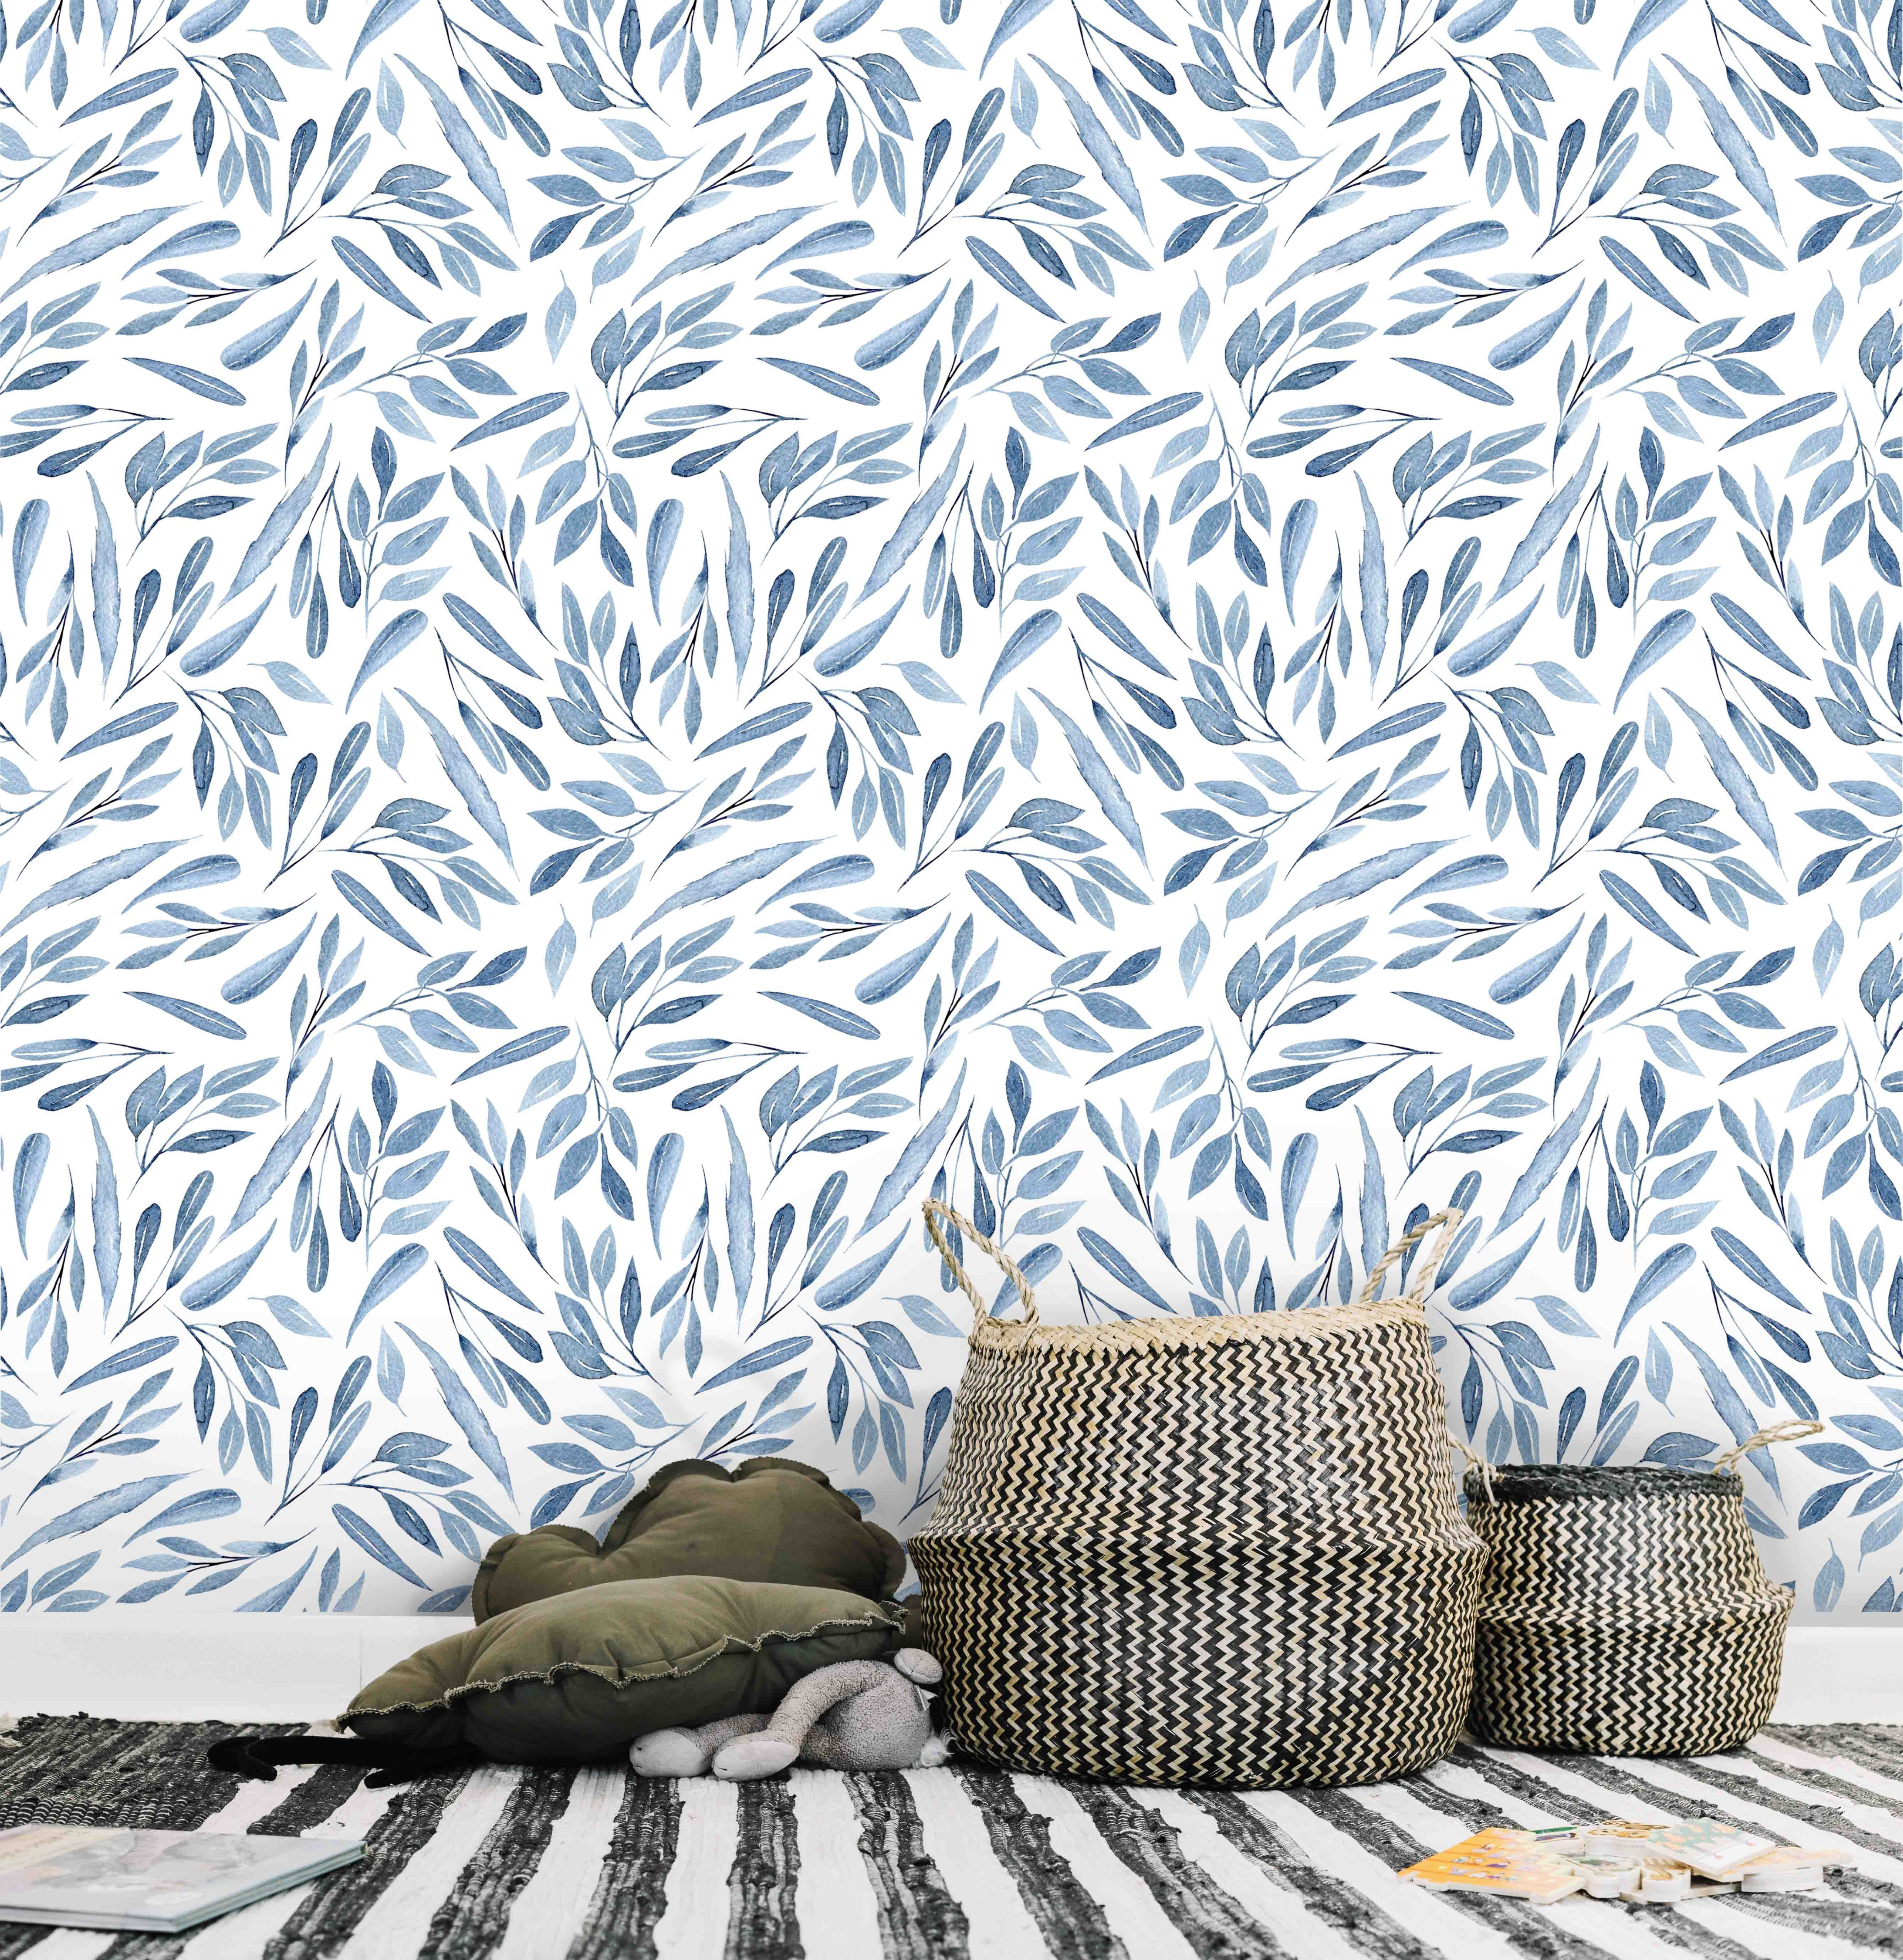 Blue Leaves Pattern Wallpaper Nature Lover Wallcovering Blue Wallpaper By Green Planet Print Leaf Wallpaper Special Wallpaper Wallpaper Roll How to measure how much wallpaper you